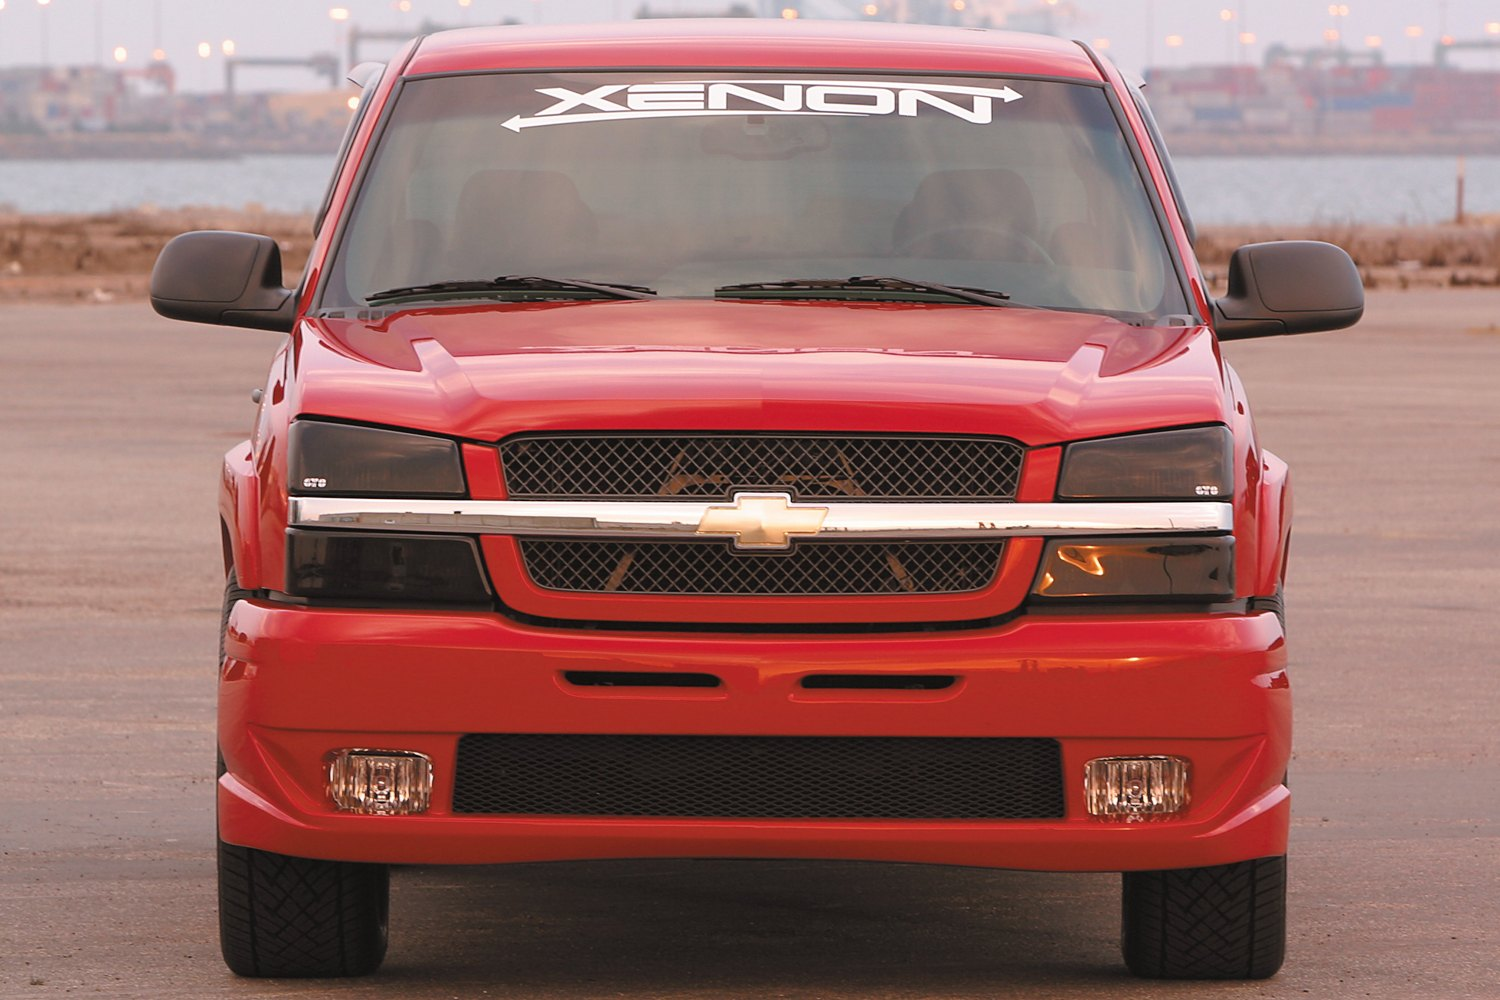 xenon chevy avalanche 1500 without body cladding 2004 front and rear bumper covers. Black Bedroom Furniture Sets. Home Design Ideas